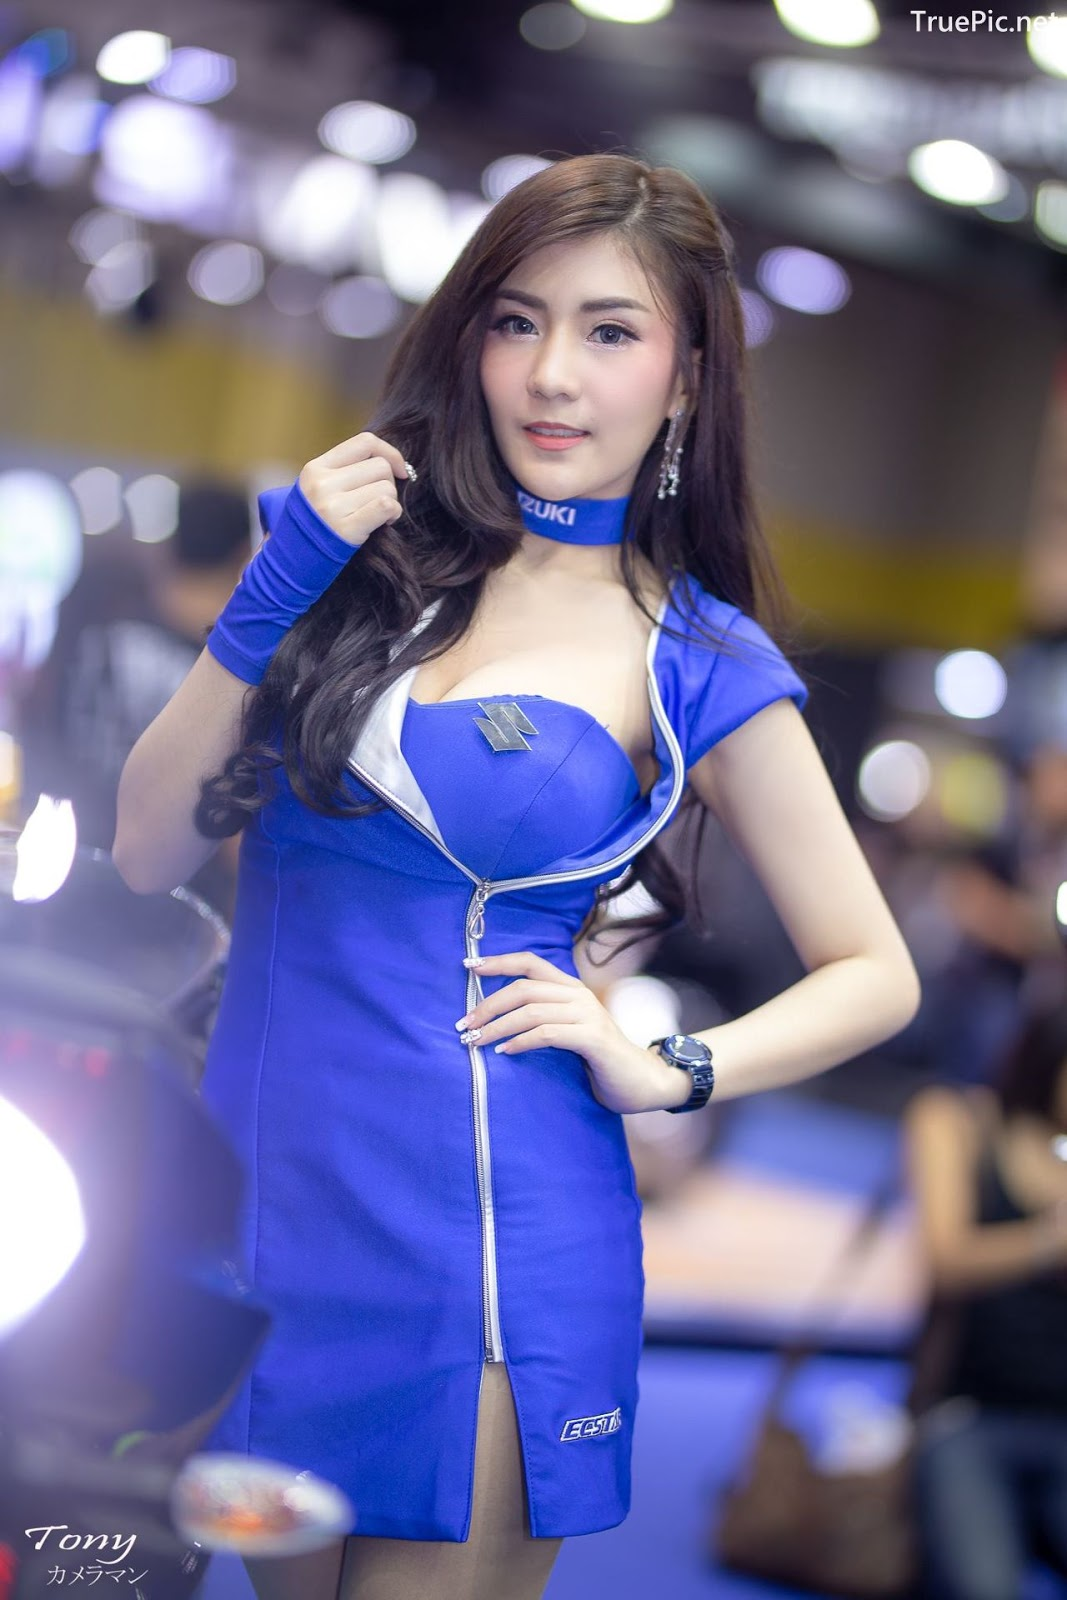 Image-Thailand-Hot-Model-Thai-Racing-Girl-At-Big-Motor-2018-TruePic.net- Picture-2